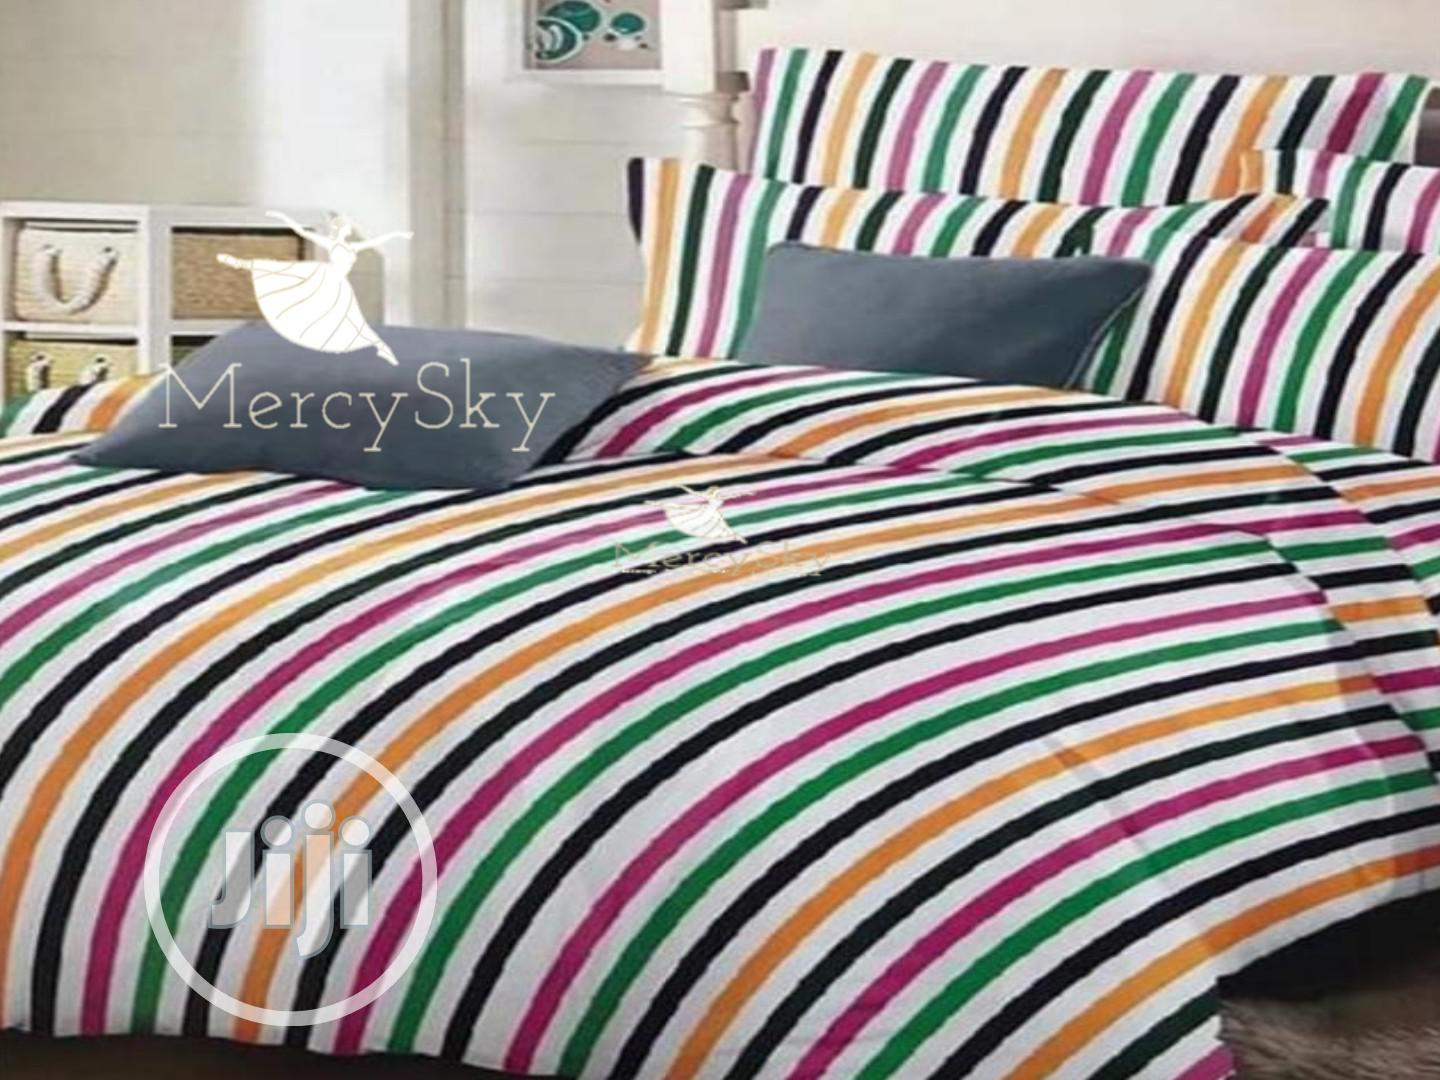 Stripe Bed Sheet and Beddings Set 4,5,6,7 Inches